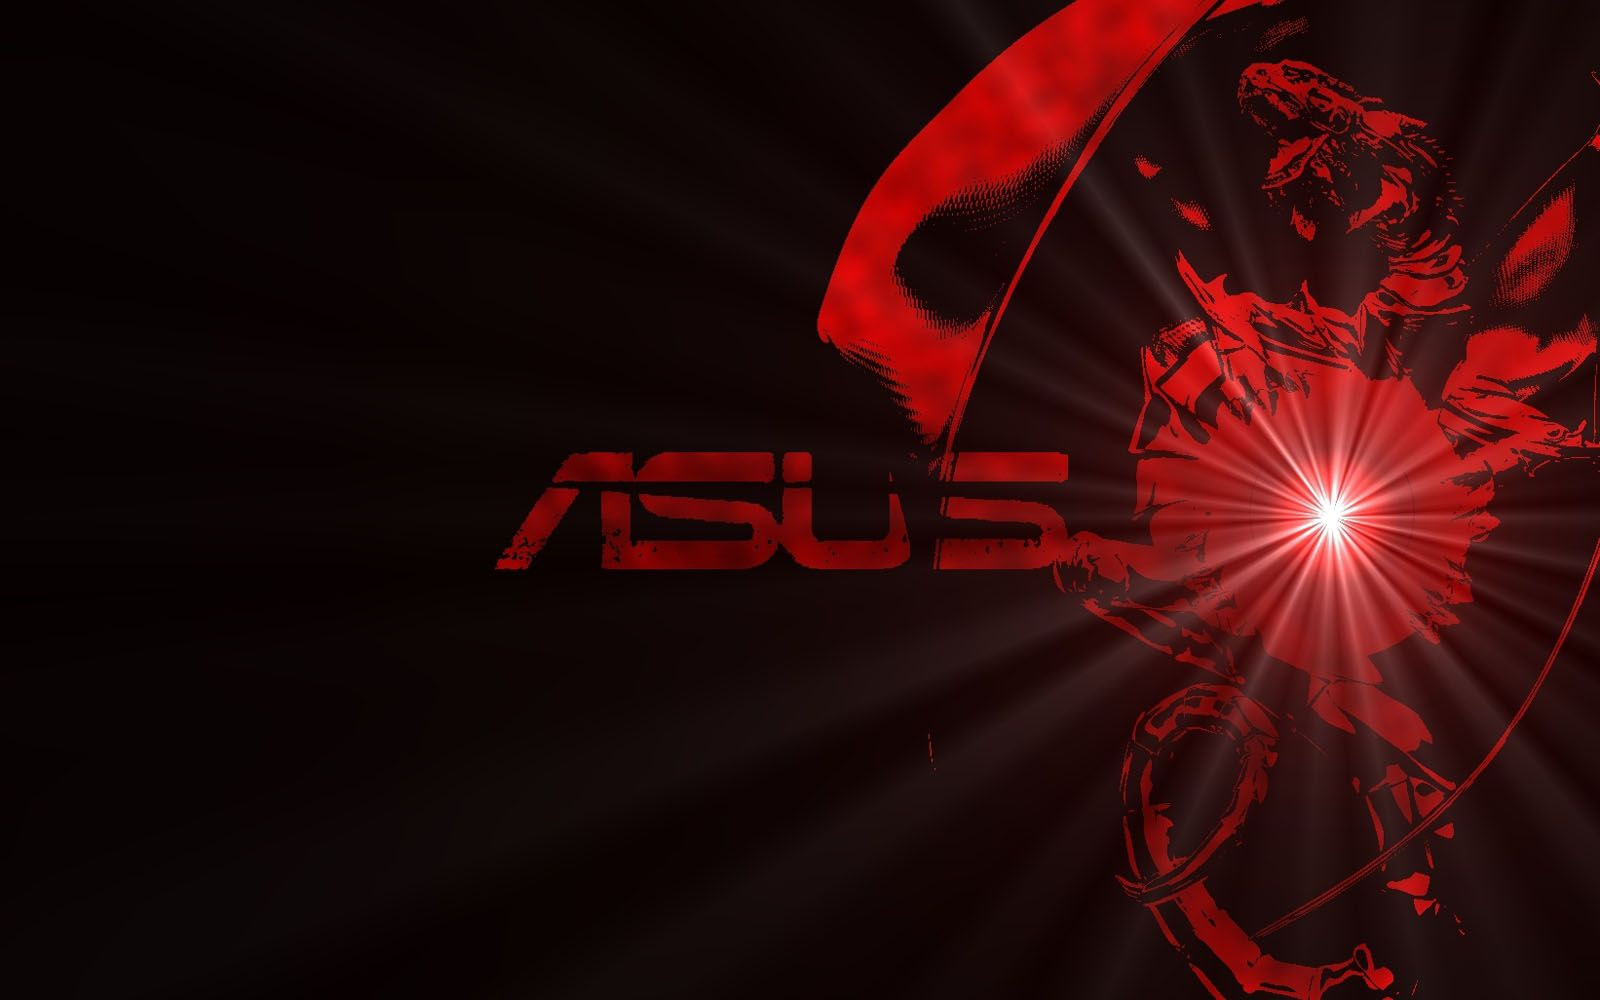 Asus Wallpapers Pictures Images | ASUS in 2019 | Wallpaper, Halloween backgrounds, Wallpaper ...